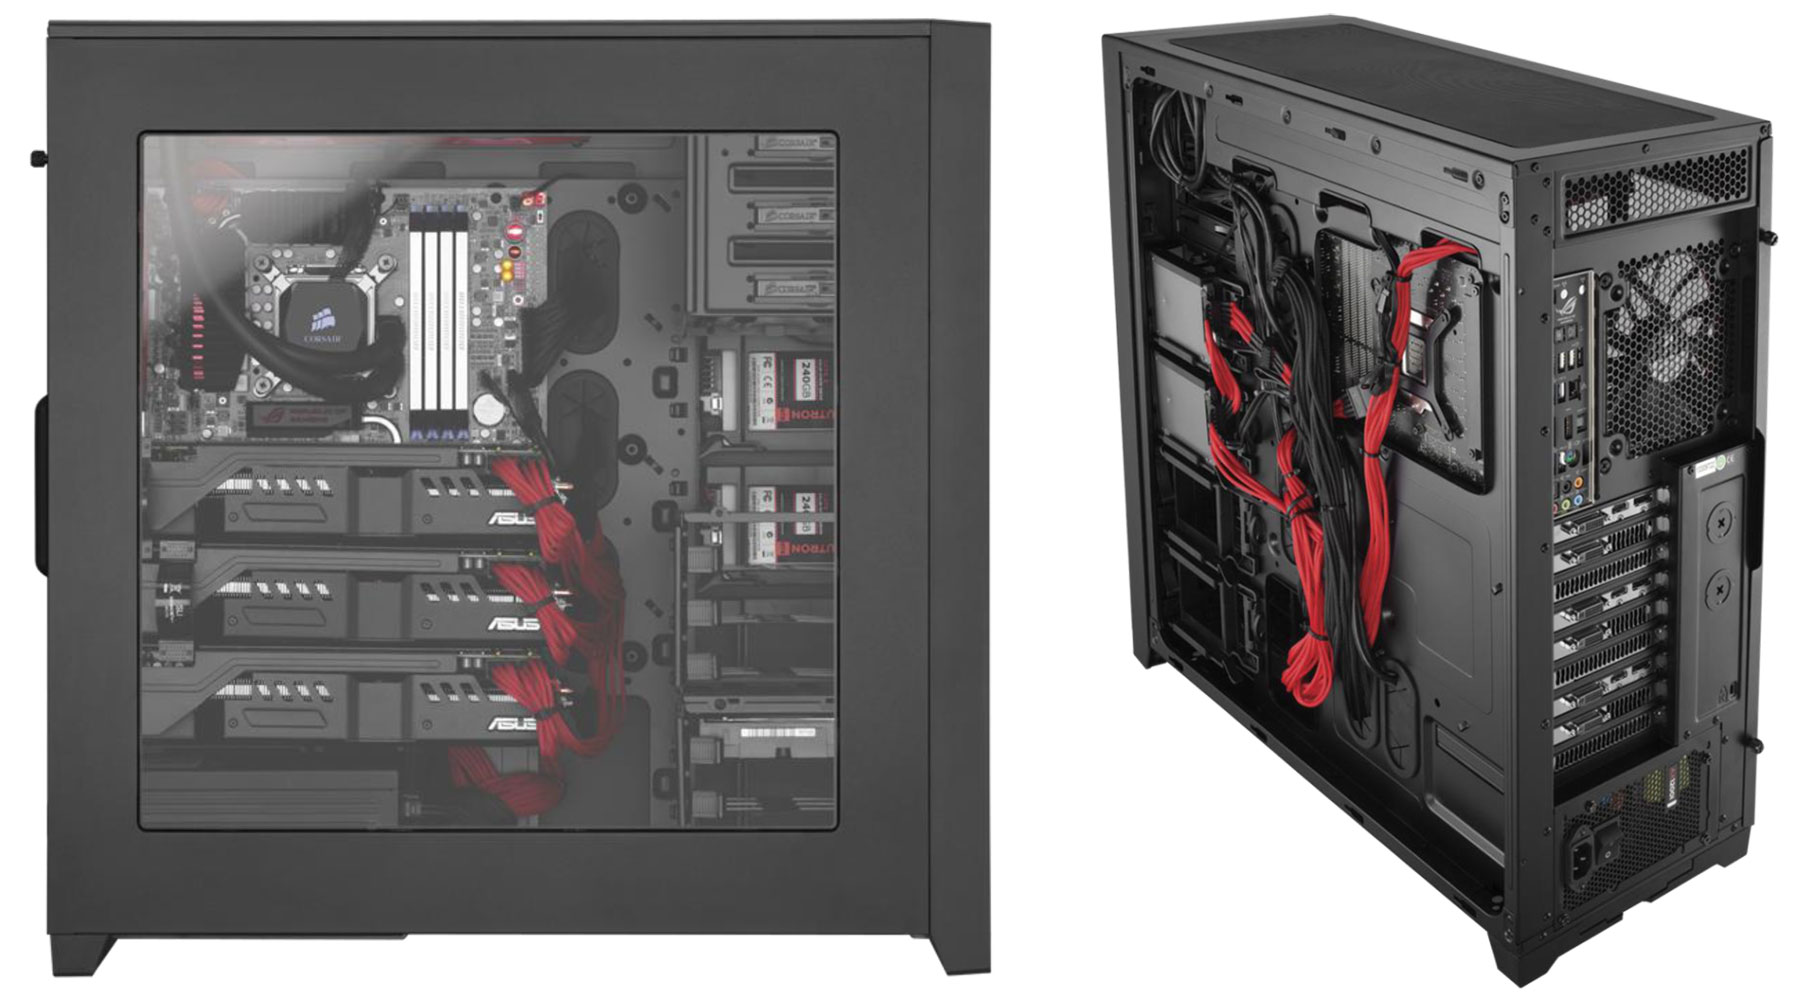 review corsair obsidian d full tower case viewing the closed side of the case opposite of the clear window you will see wires pre run from the front panel to give you an idea of how well you can